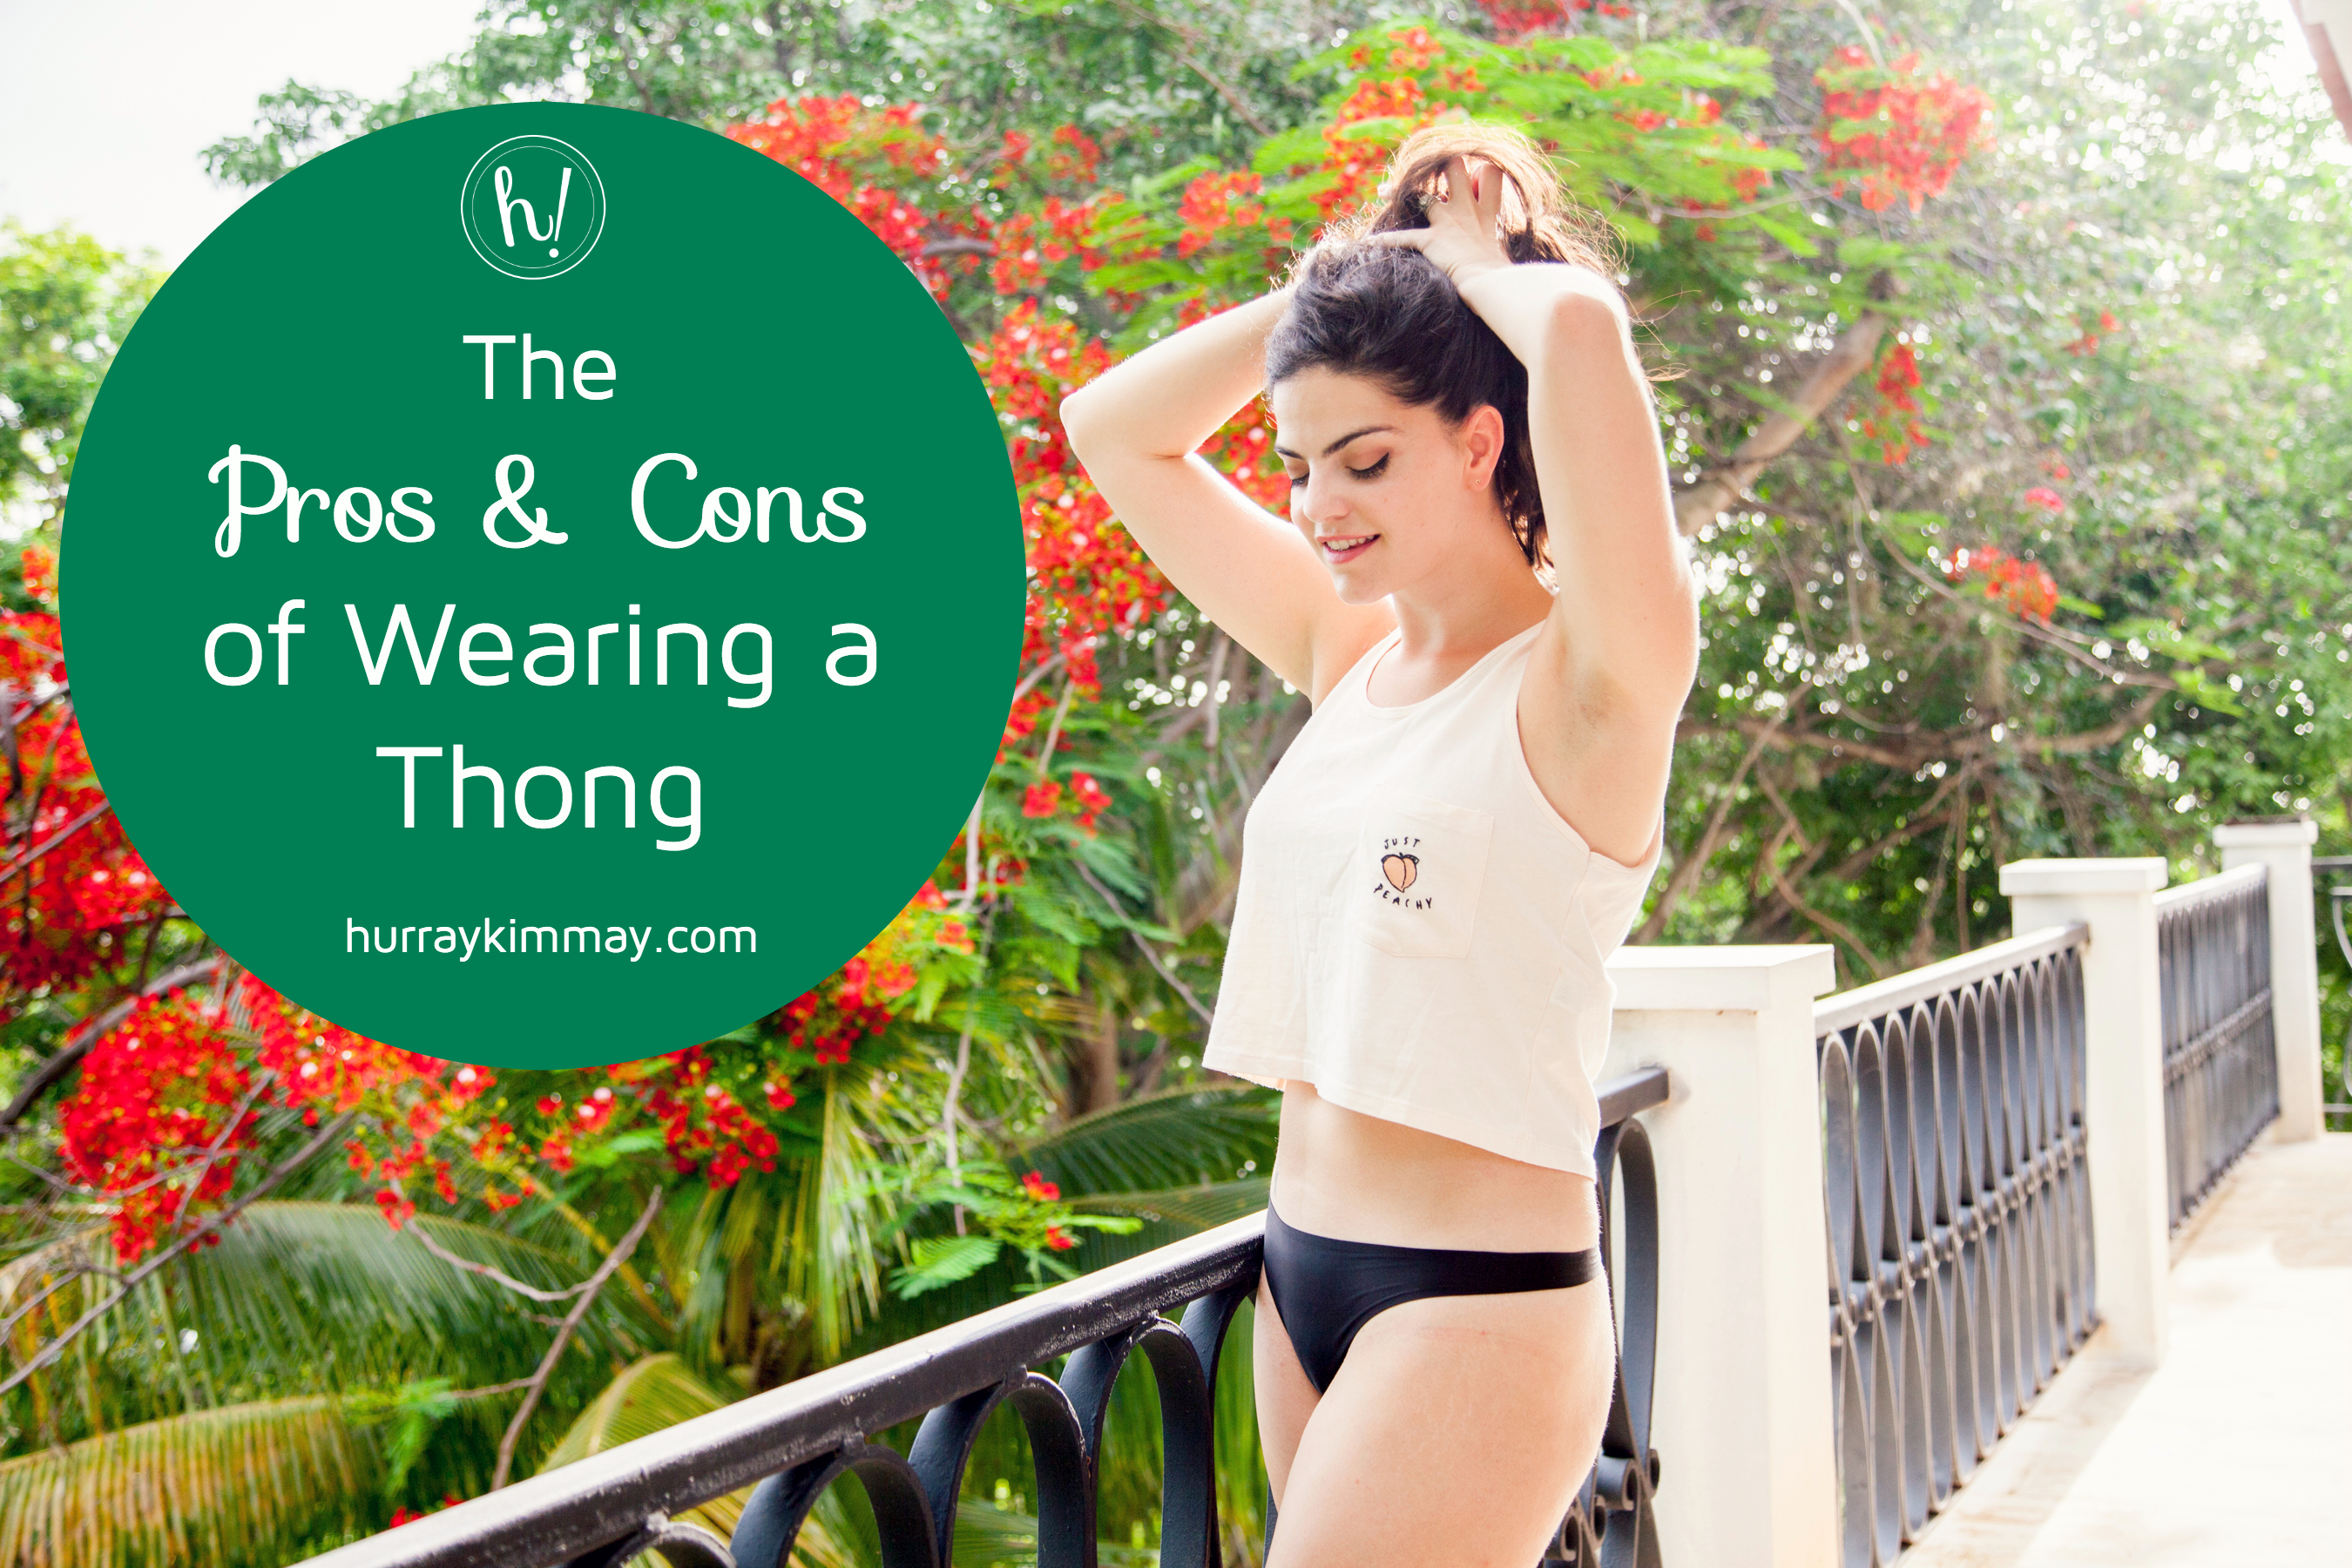 the pros & cons of wearing thongs - hurray kimmay